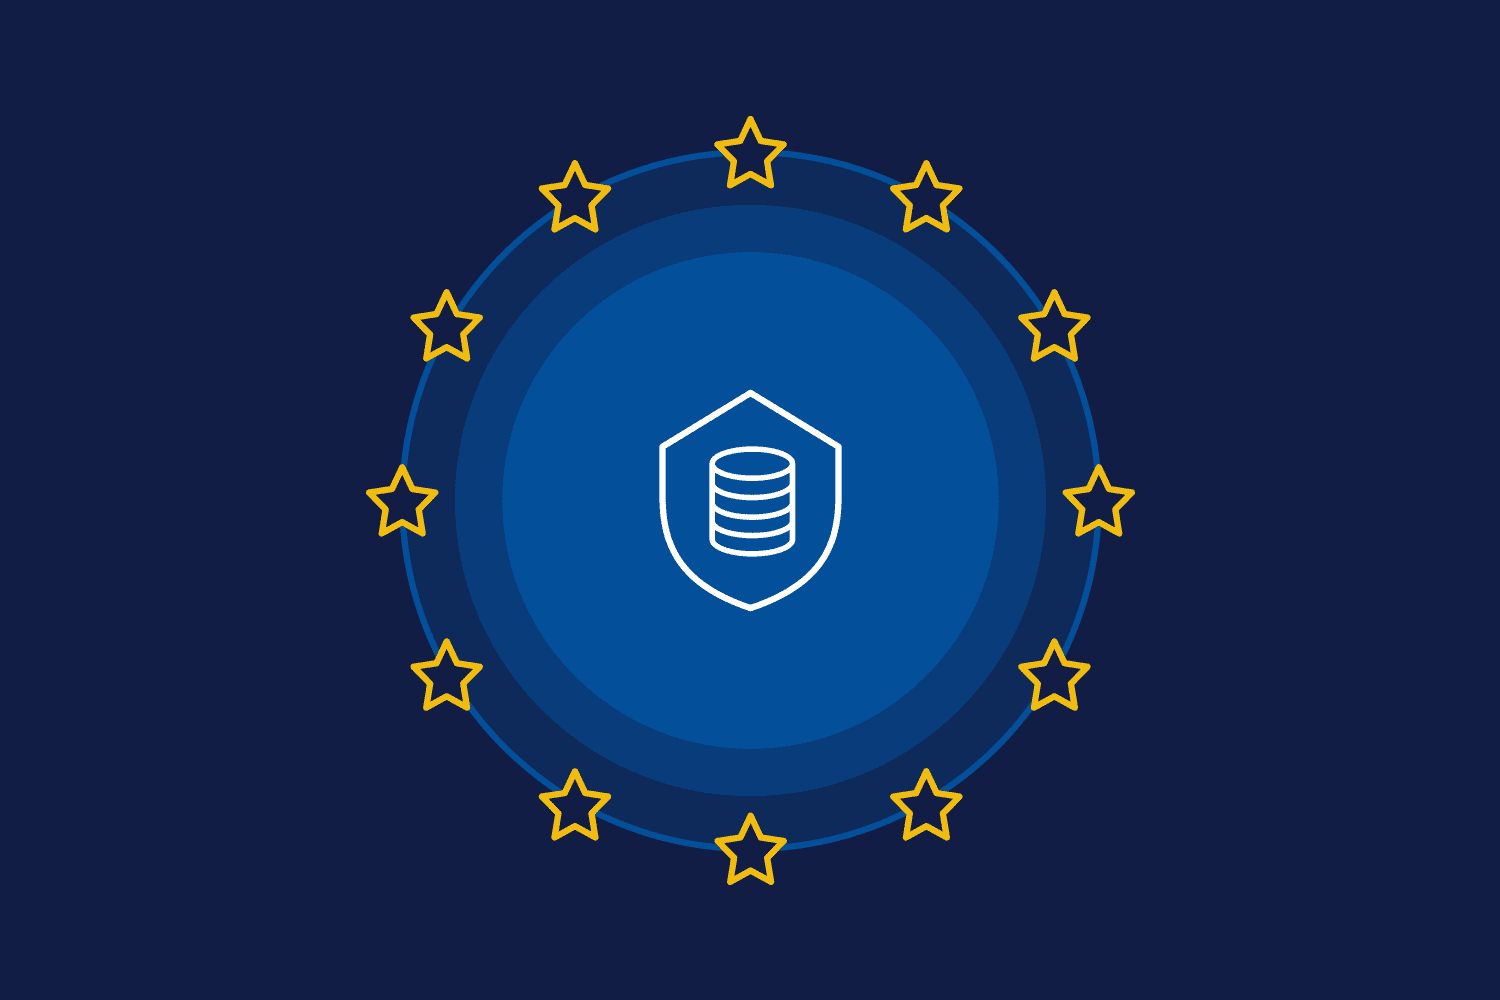 EU flag with data protection icon in center